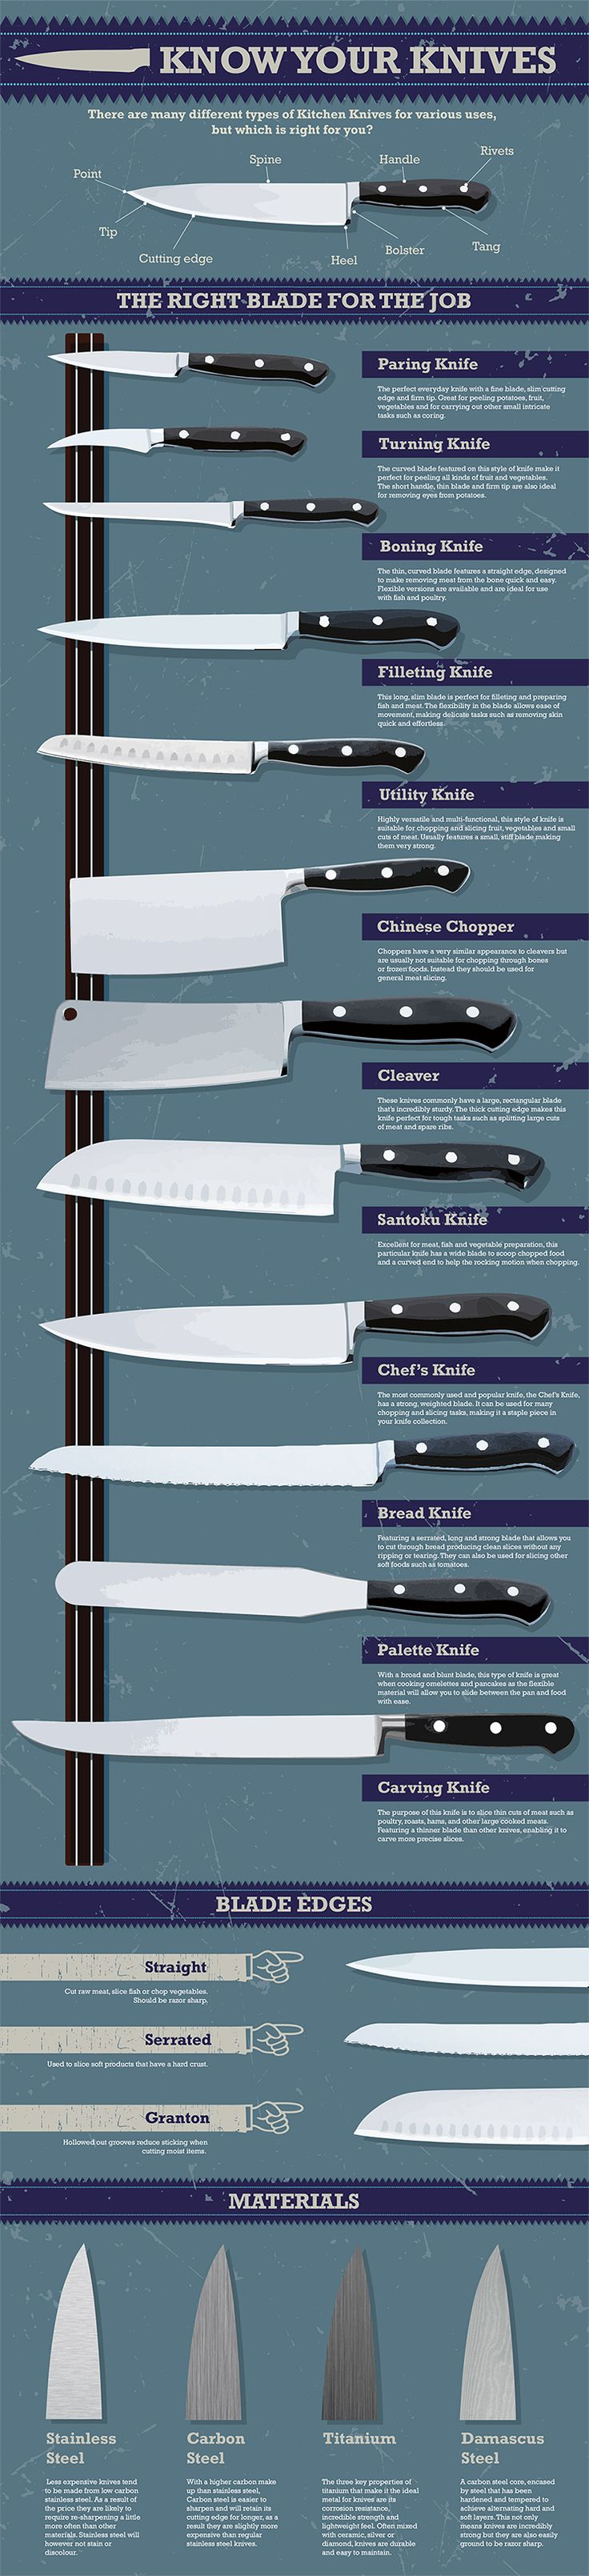 Know Your Knives Chart